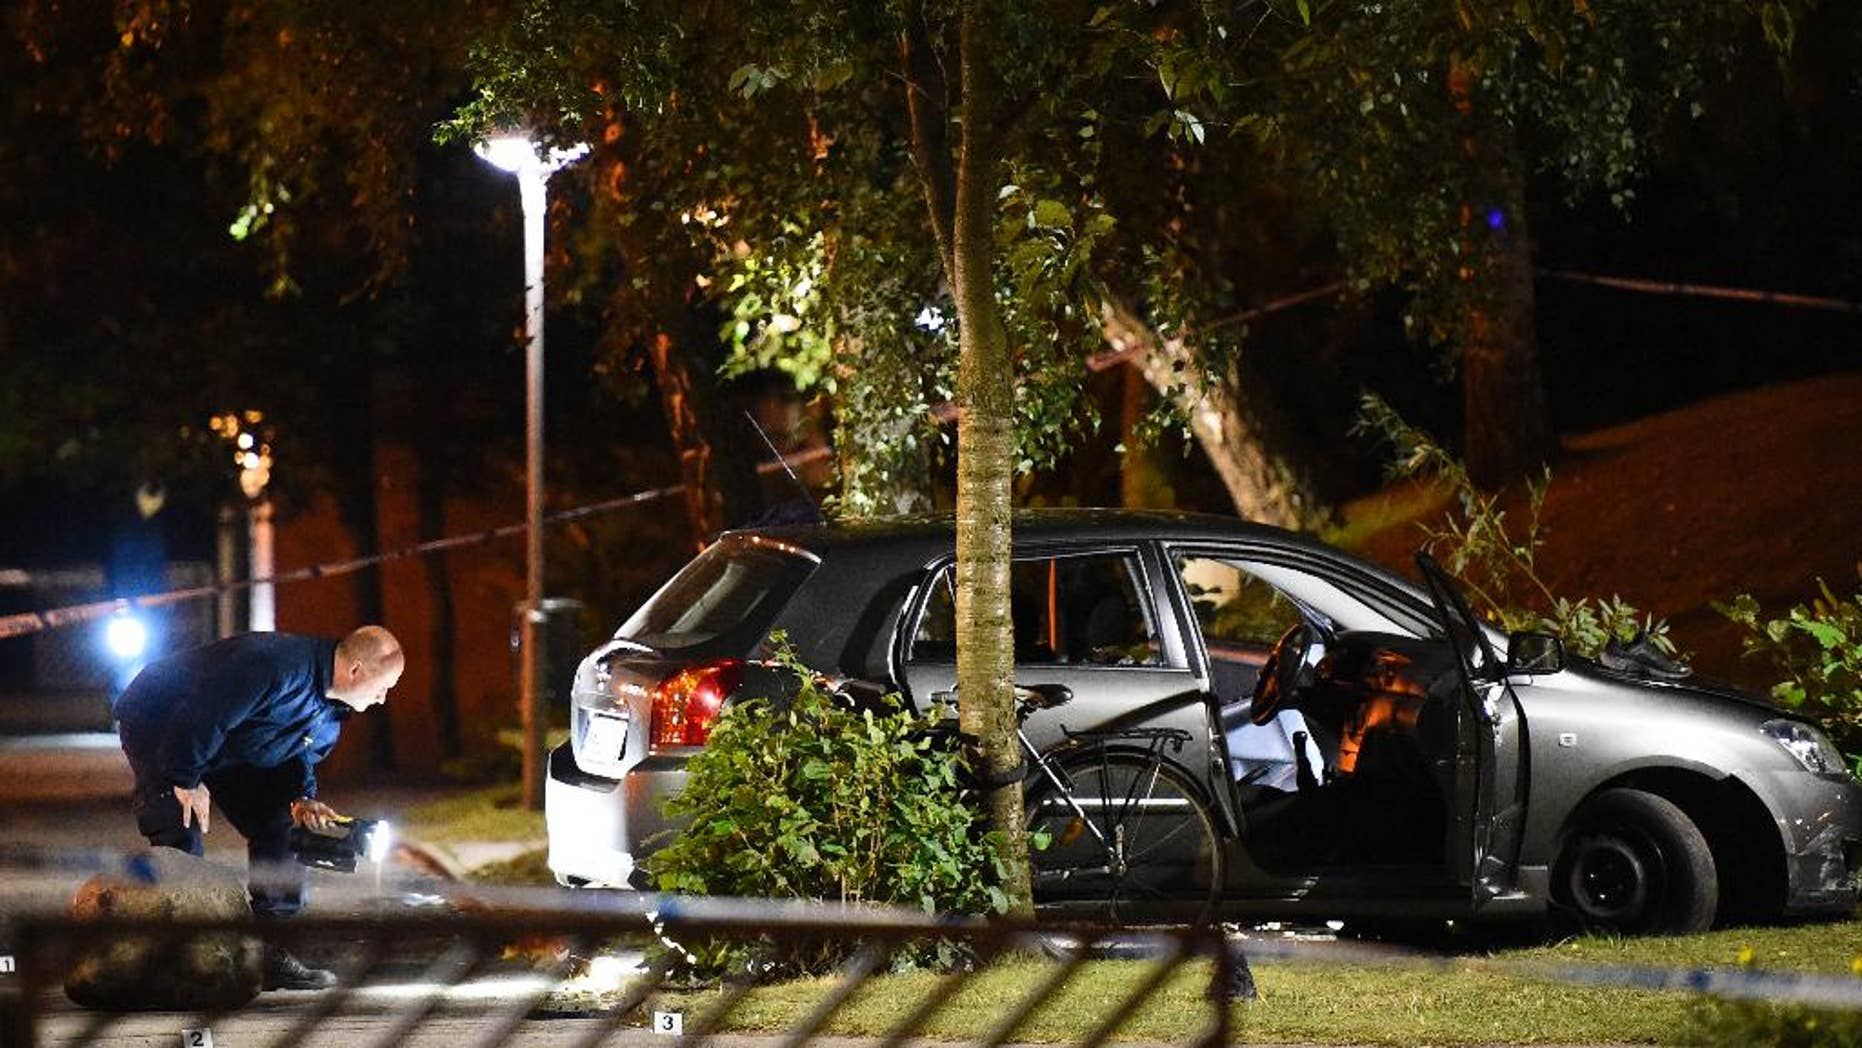 Police examine the scene of a shooting in southern Malmo, Sweden, Sunday Sept. 25, 2016. Swedish police say four people have been wounded in a shooting in Malmo, after gunmen on motor scooters opened fire Sunday evening on a car they had been chasing through a neighborhood. (Emil Langvad/TT via AP)